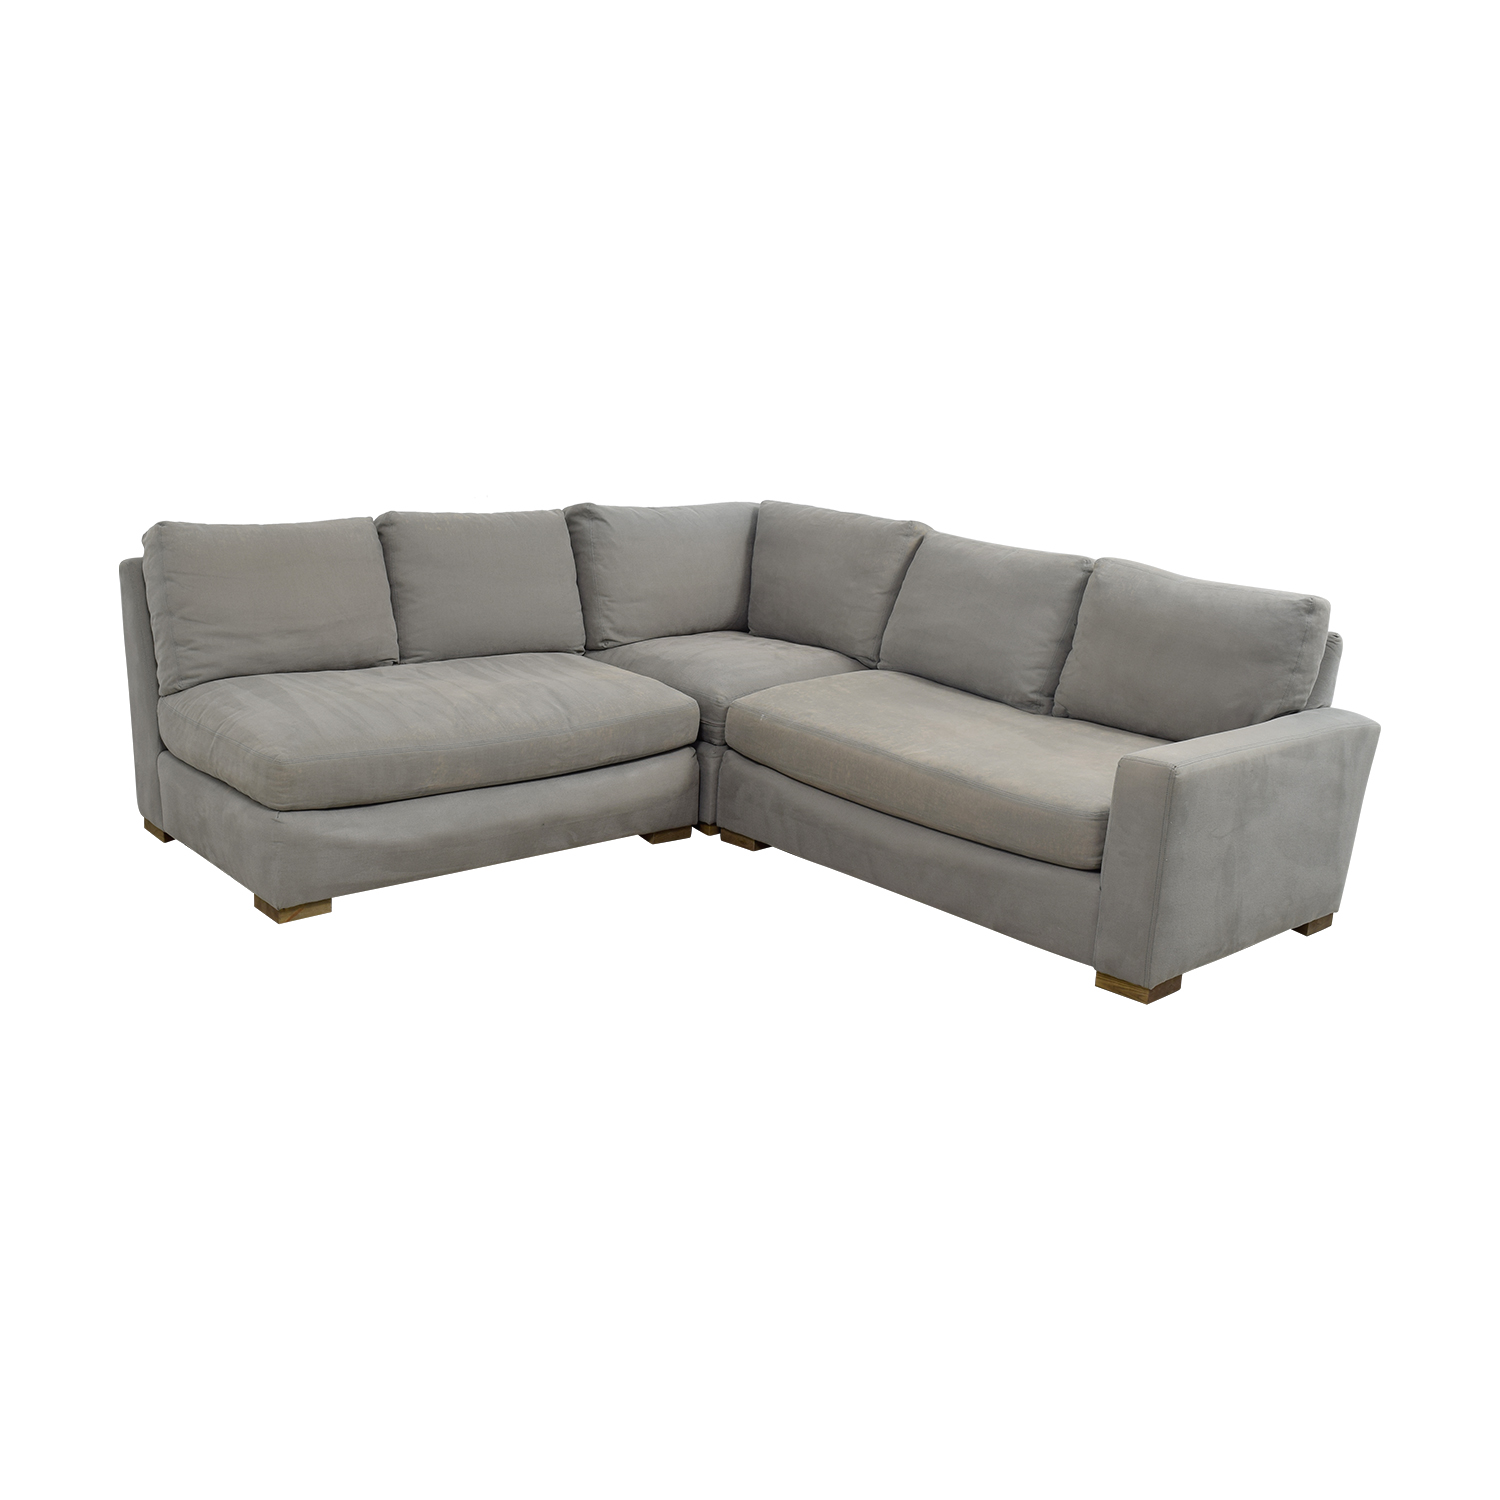 77 Off Restoration Hardware Restoration Hardware Grey L